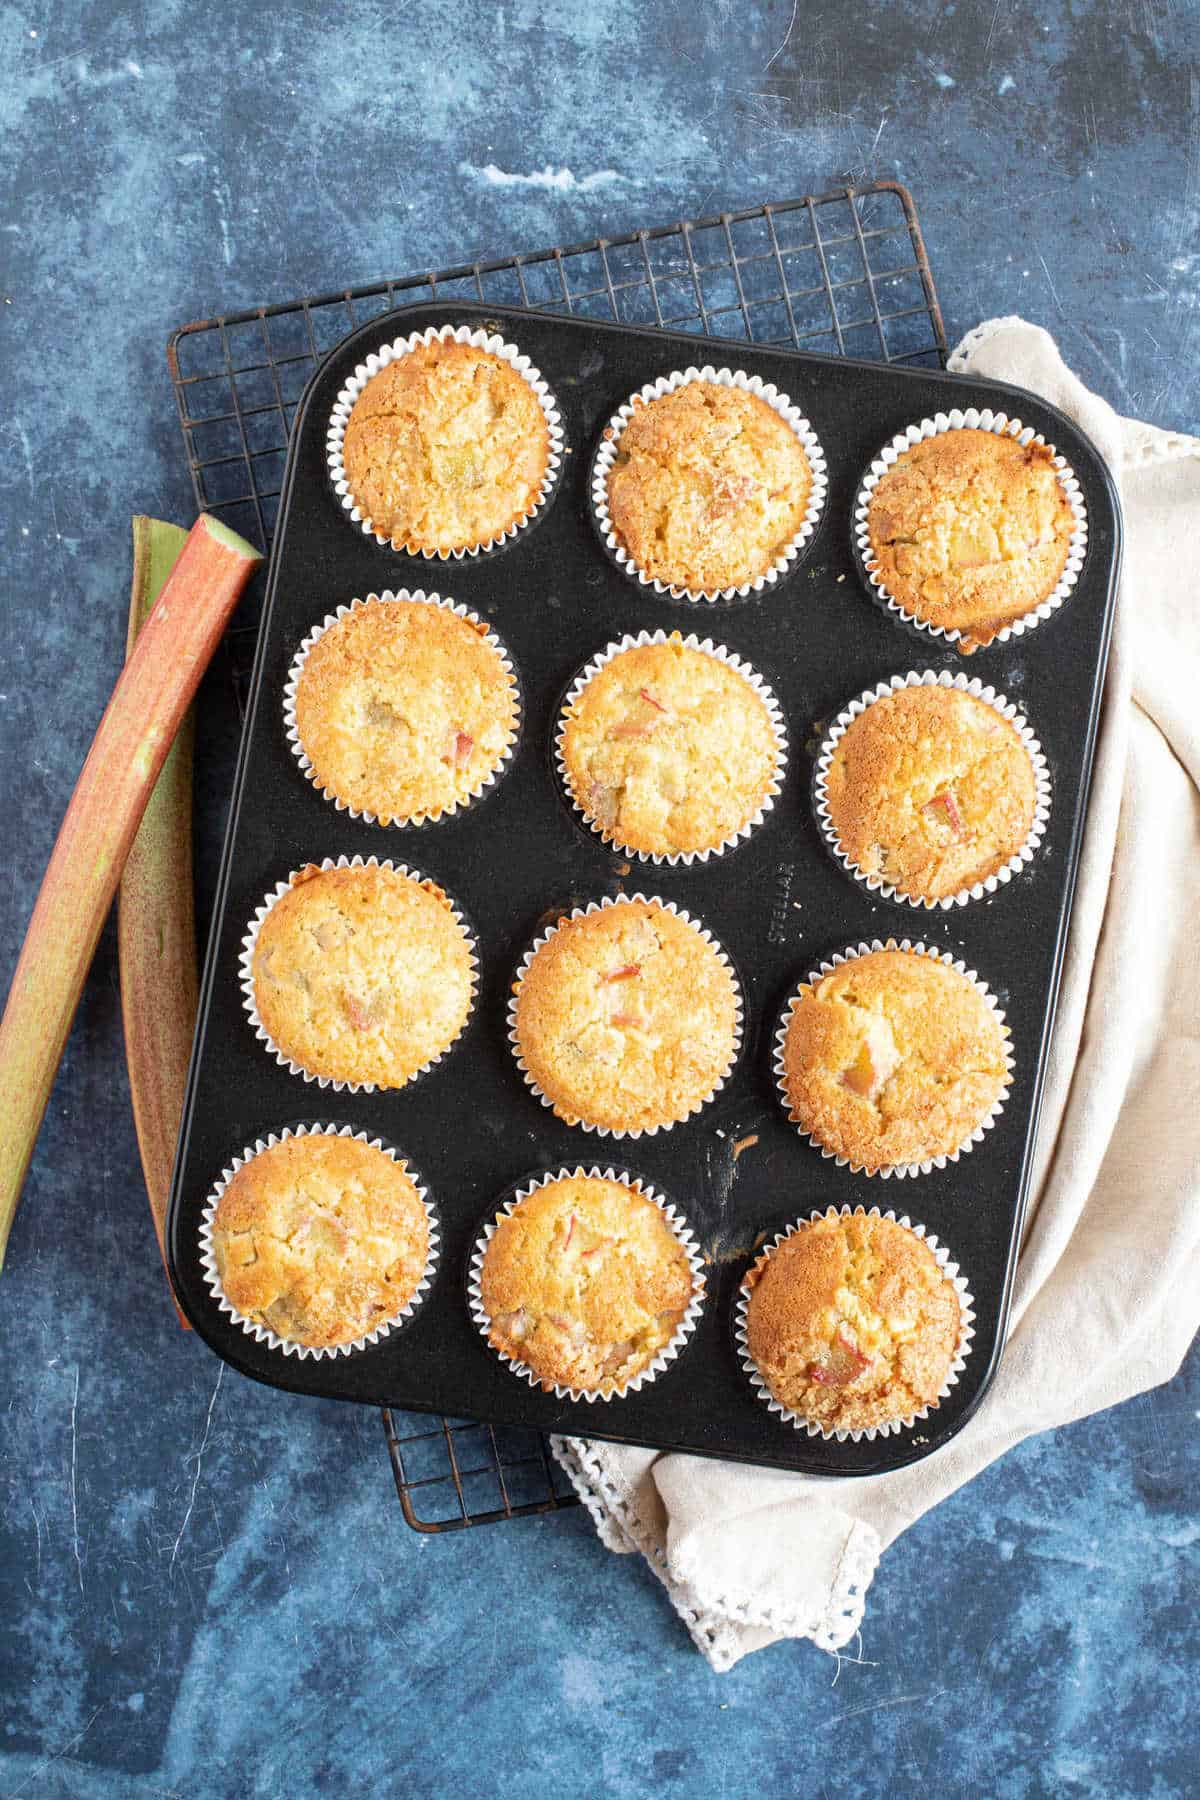 Rhubarb muffins in a muffin tray.